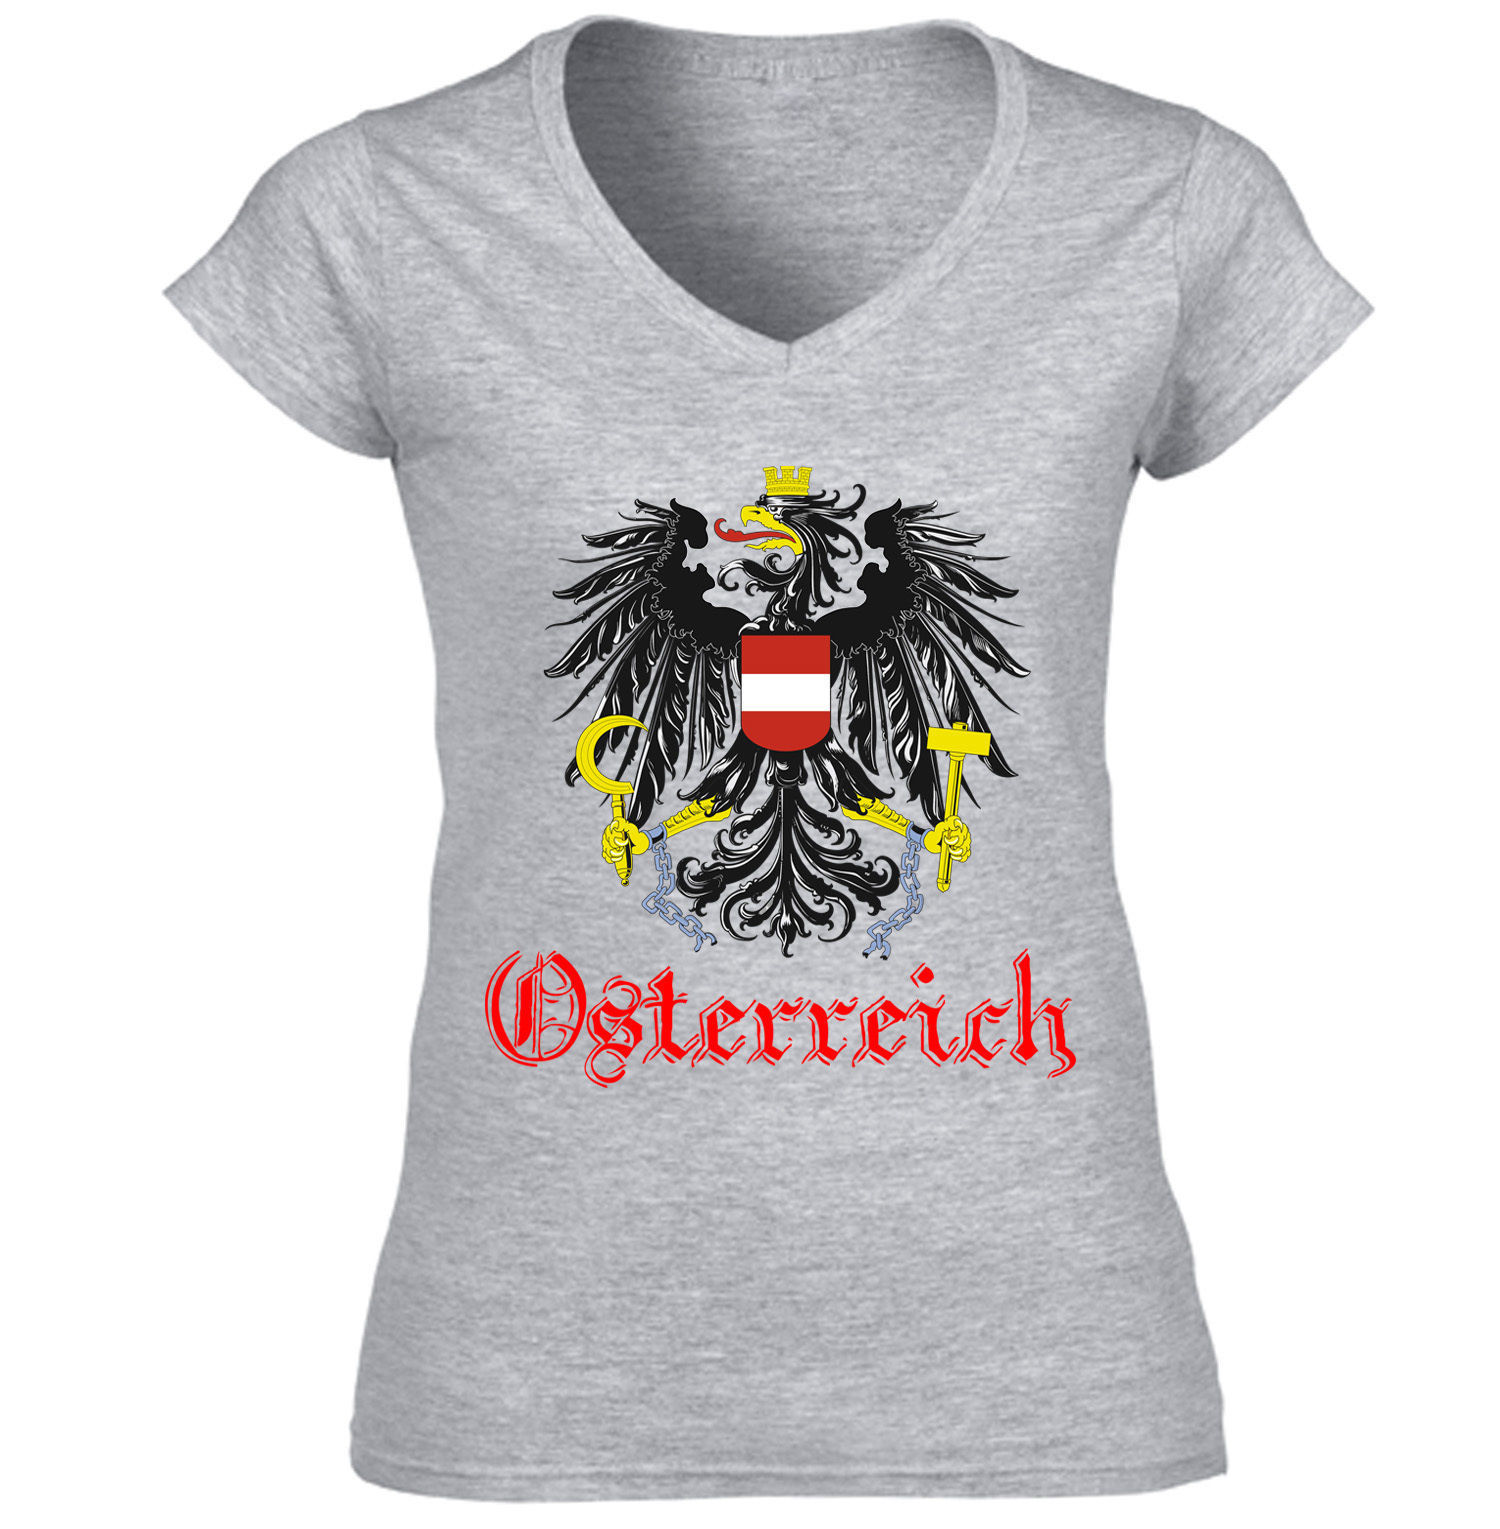 Primary image for AUSTRIA - COTTON GREY TSHIRT S-M-L-XL-XXL